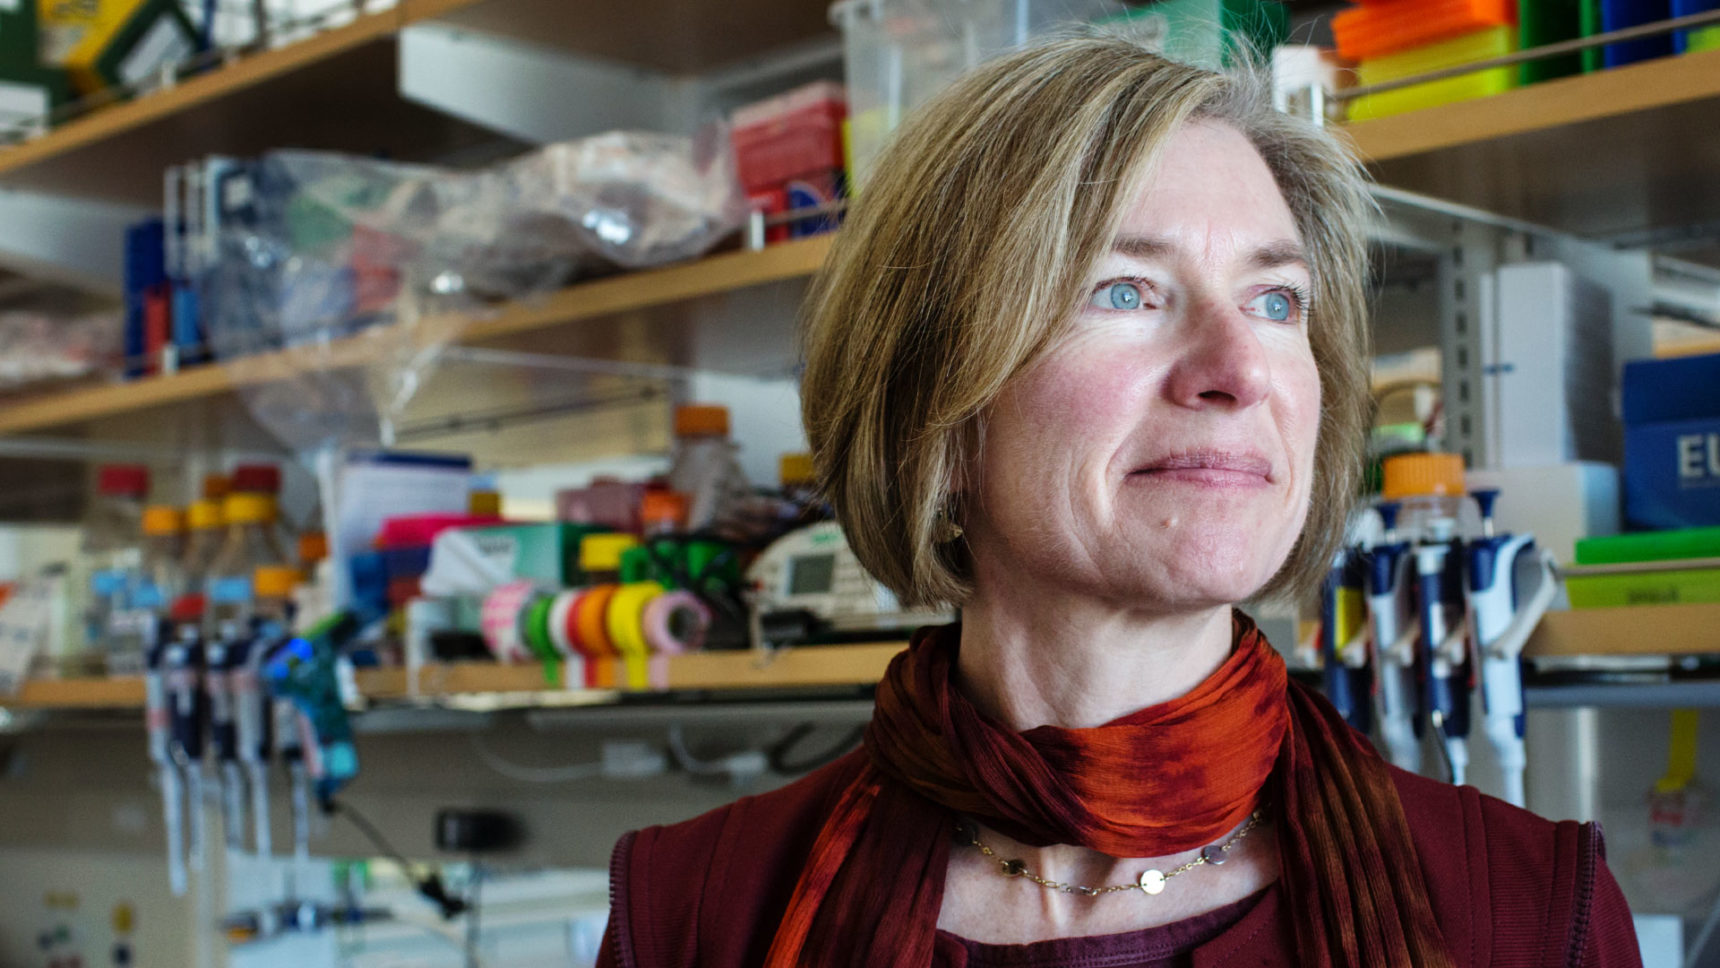 Jennifer Doudna, one of the coinventors of CRISPR technology, discusses how her work on bacterial defenses against viruses helped lead to a discovery with a revolutionary impact on biological research.